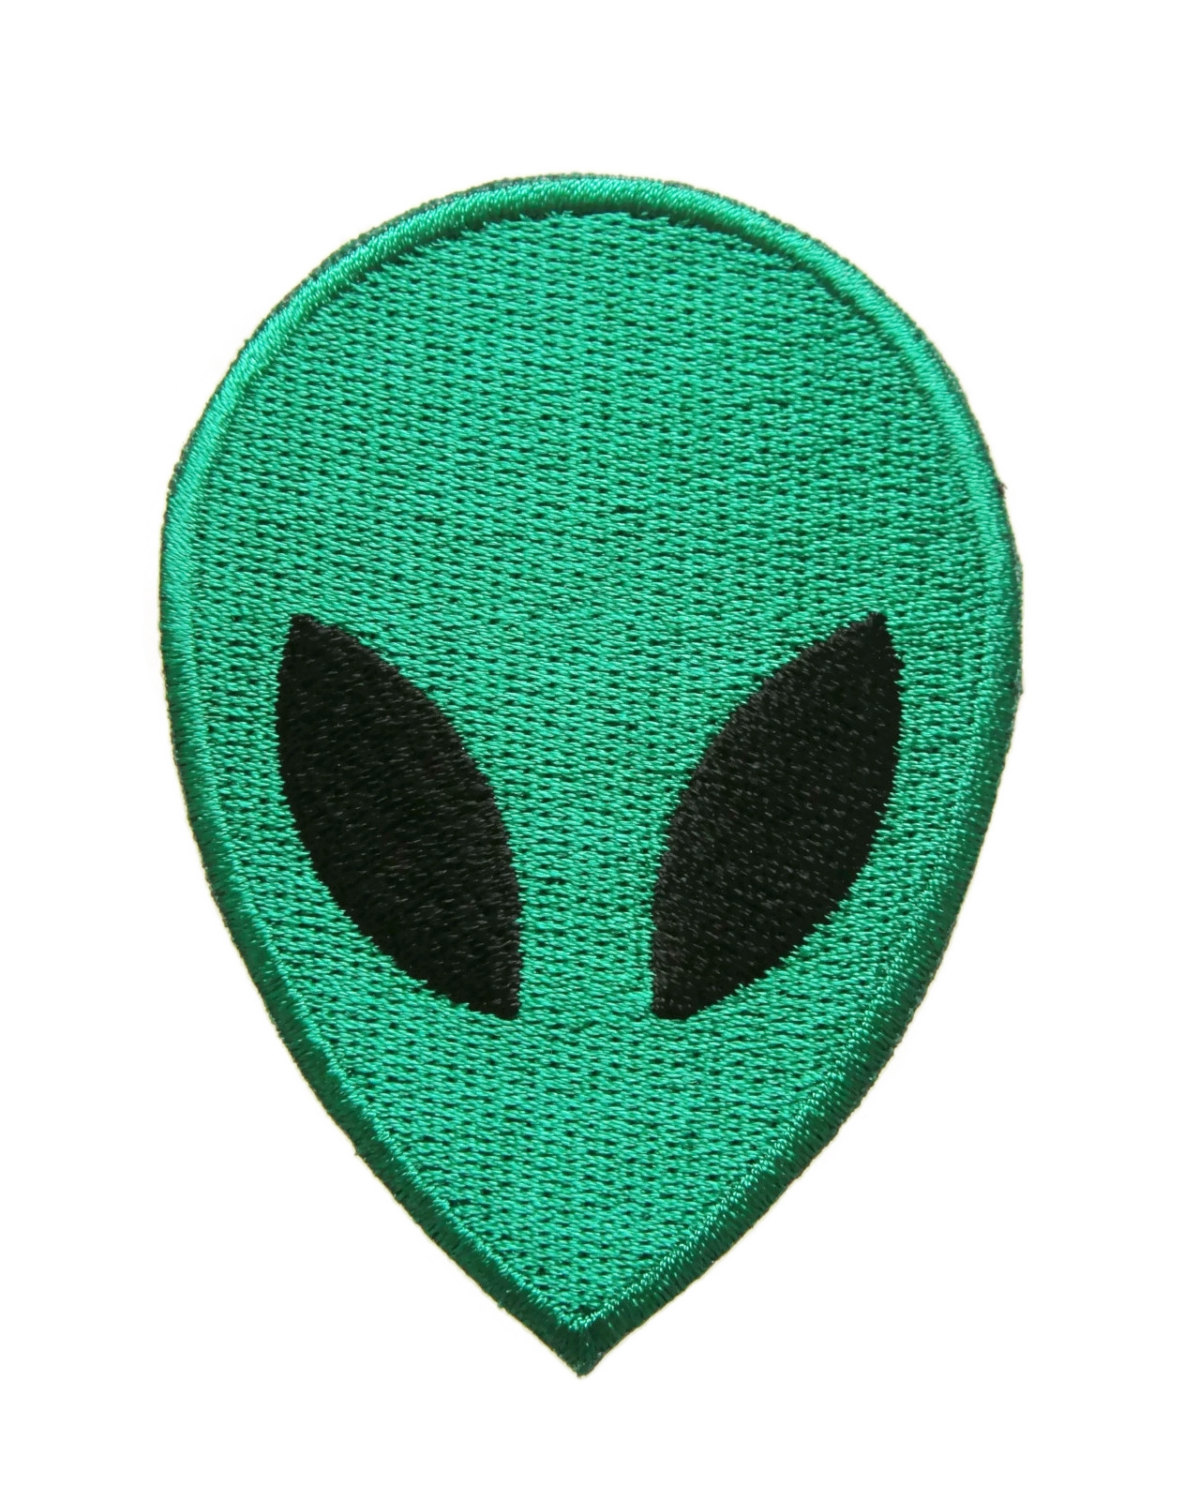 Alien face cartoon peace ufo applique embroidered iron on patch p332